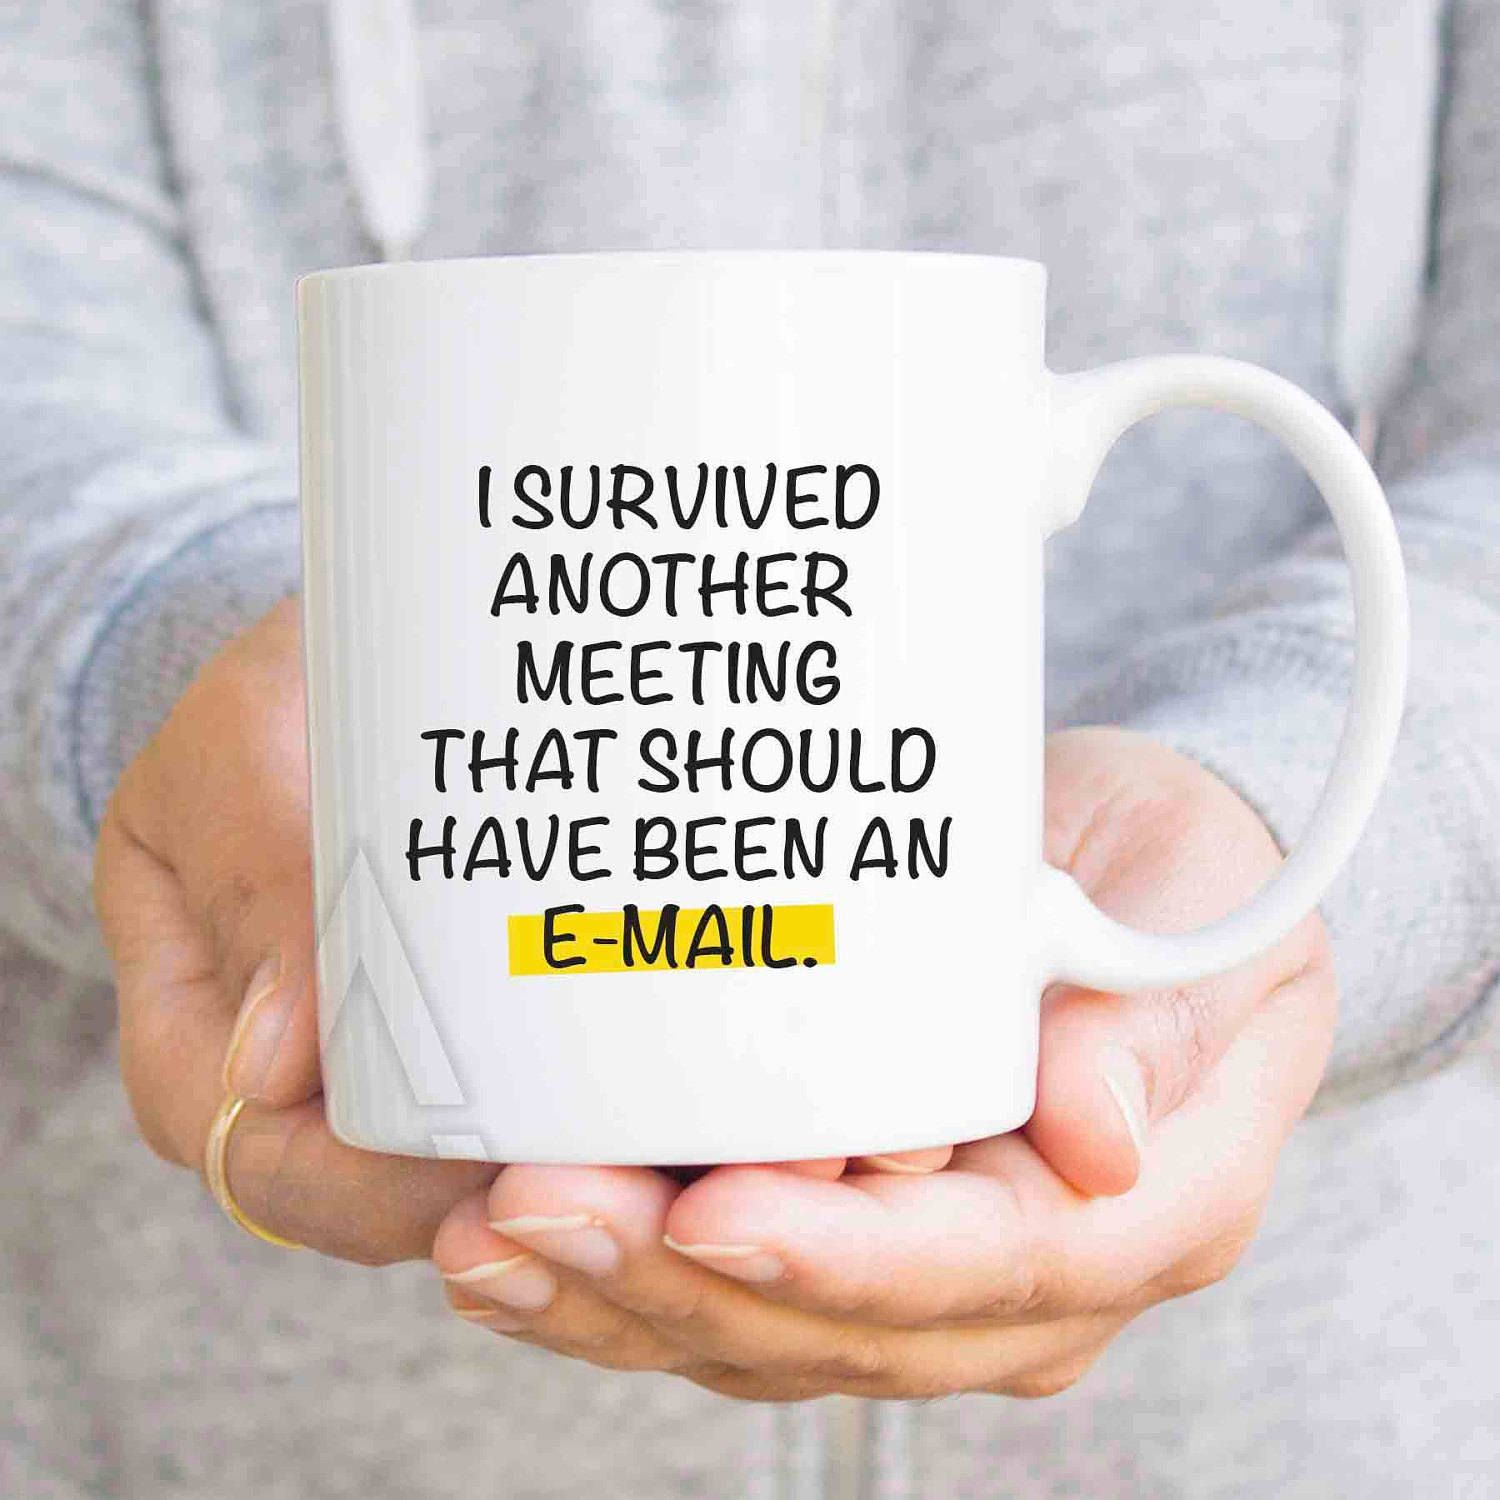 Gifts for coworkers I survived another meeting, funny coffee cup, boss gifts, cubicle decor, women gifts, colleague gift ideas cheap MU476 #christmasgiftsforcoworkers Gifts for coworkers I survived another meeting, funny coffee cup, boss gifts, cubicle decor, women gifts, colleague gift ideas cheap MU476 by artRuss on Etsy #wichtelgeschenkideenkollegen